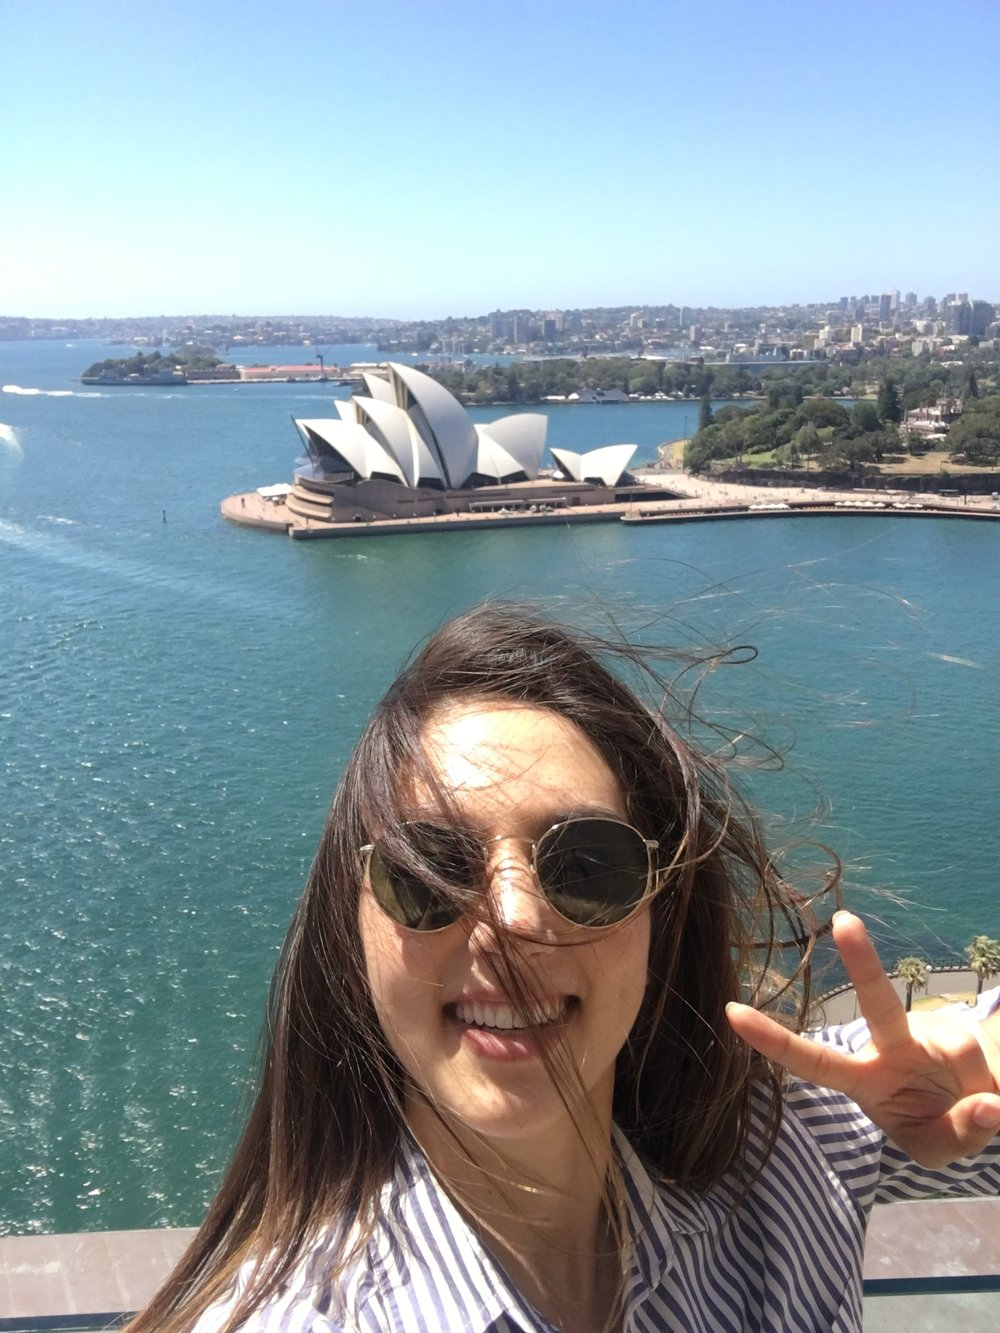 the wind couldn't stop me from taking a selfie with the sydney opera house!